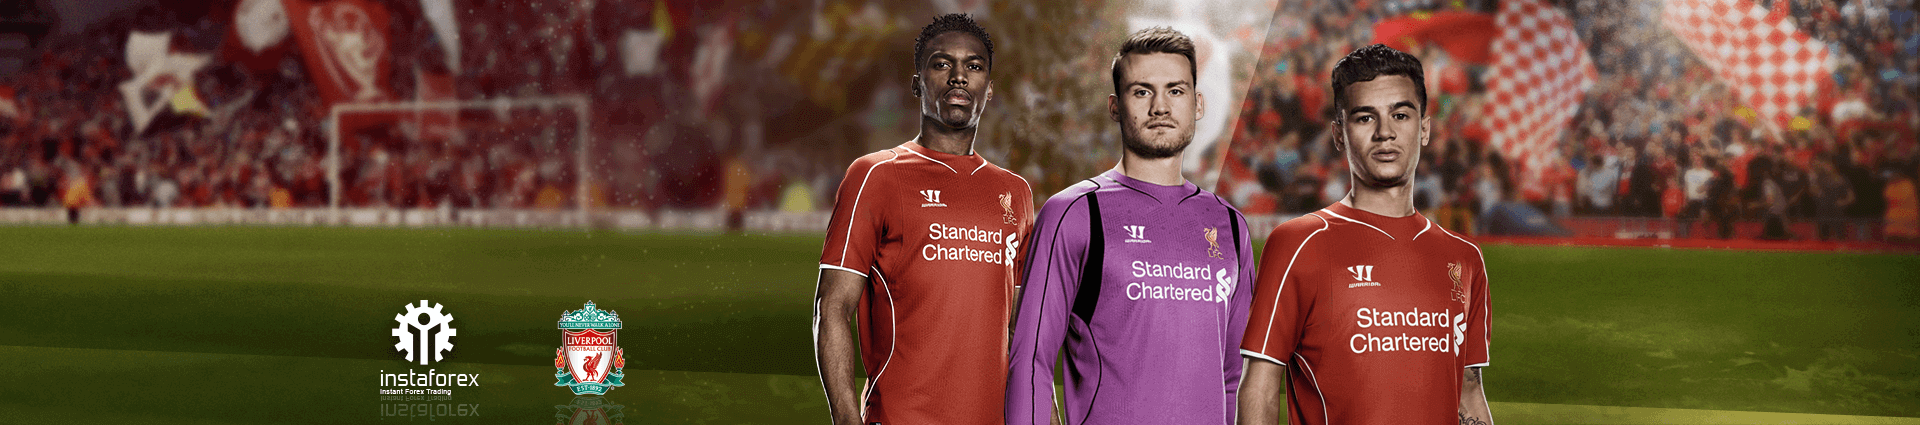 Liverpool football club mitra resmi InstaForex